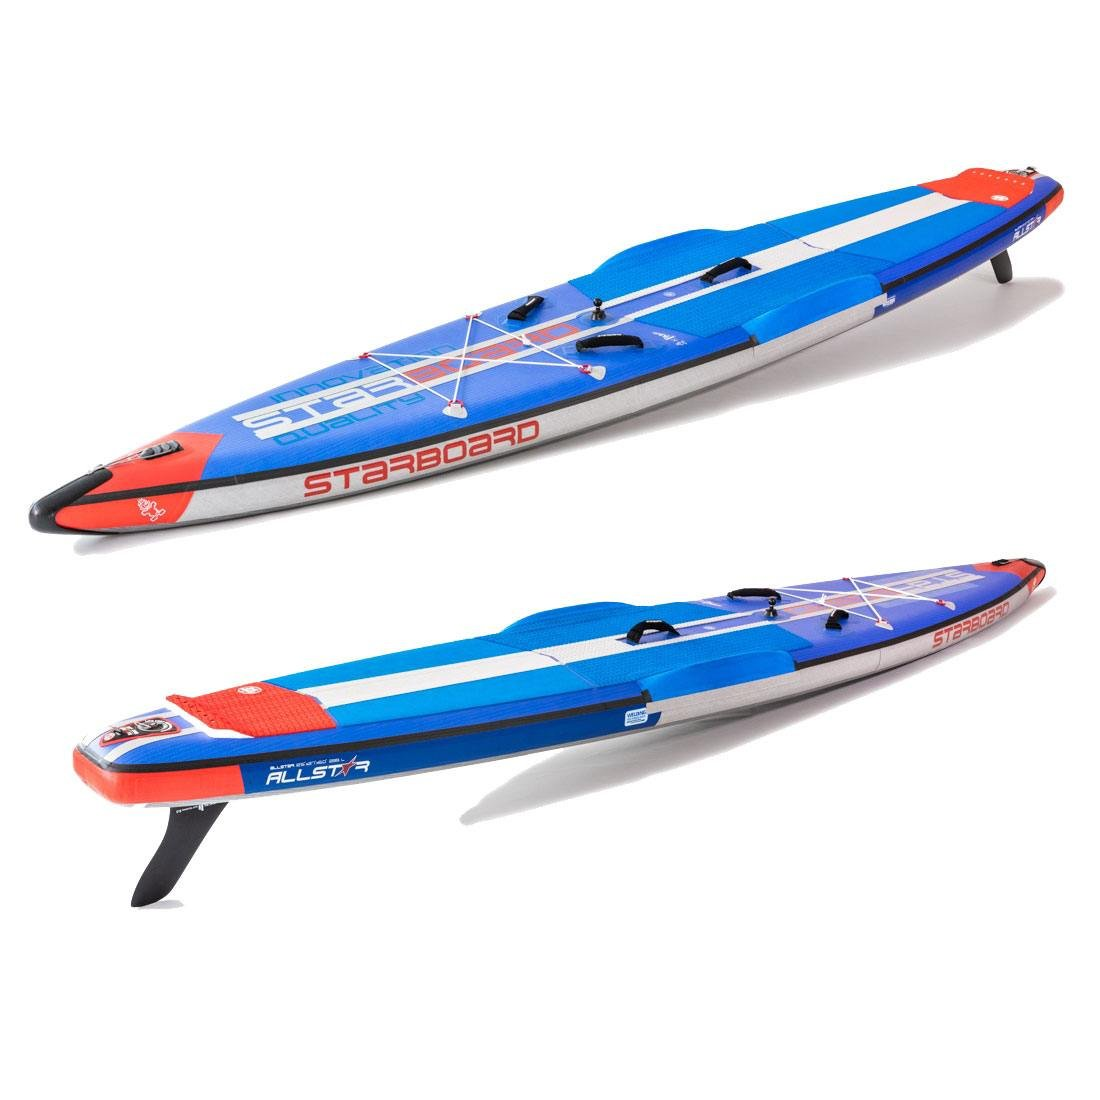 Starboard 2019 12'6 SUP Inflatable All Star Airline